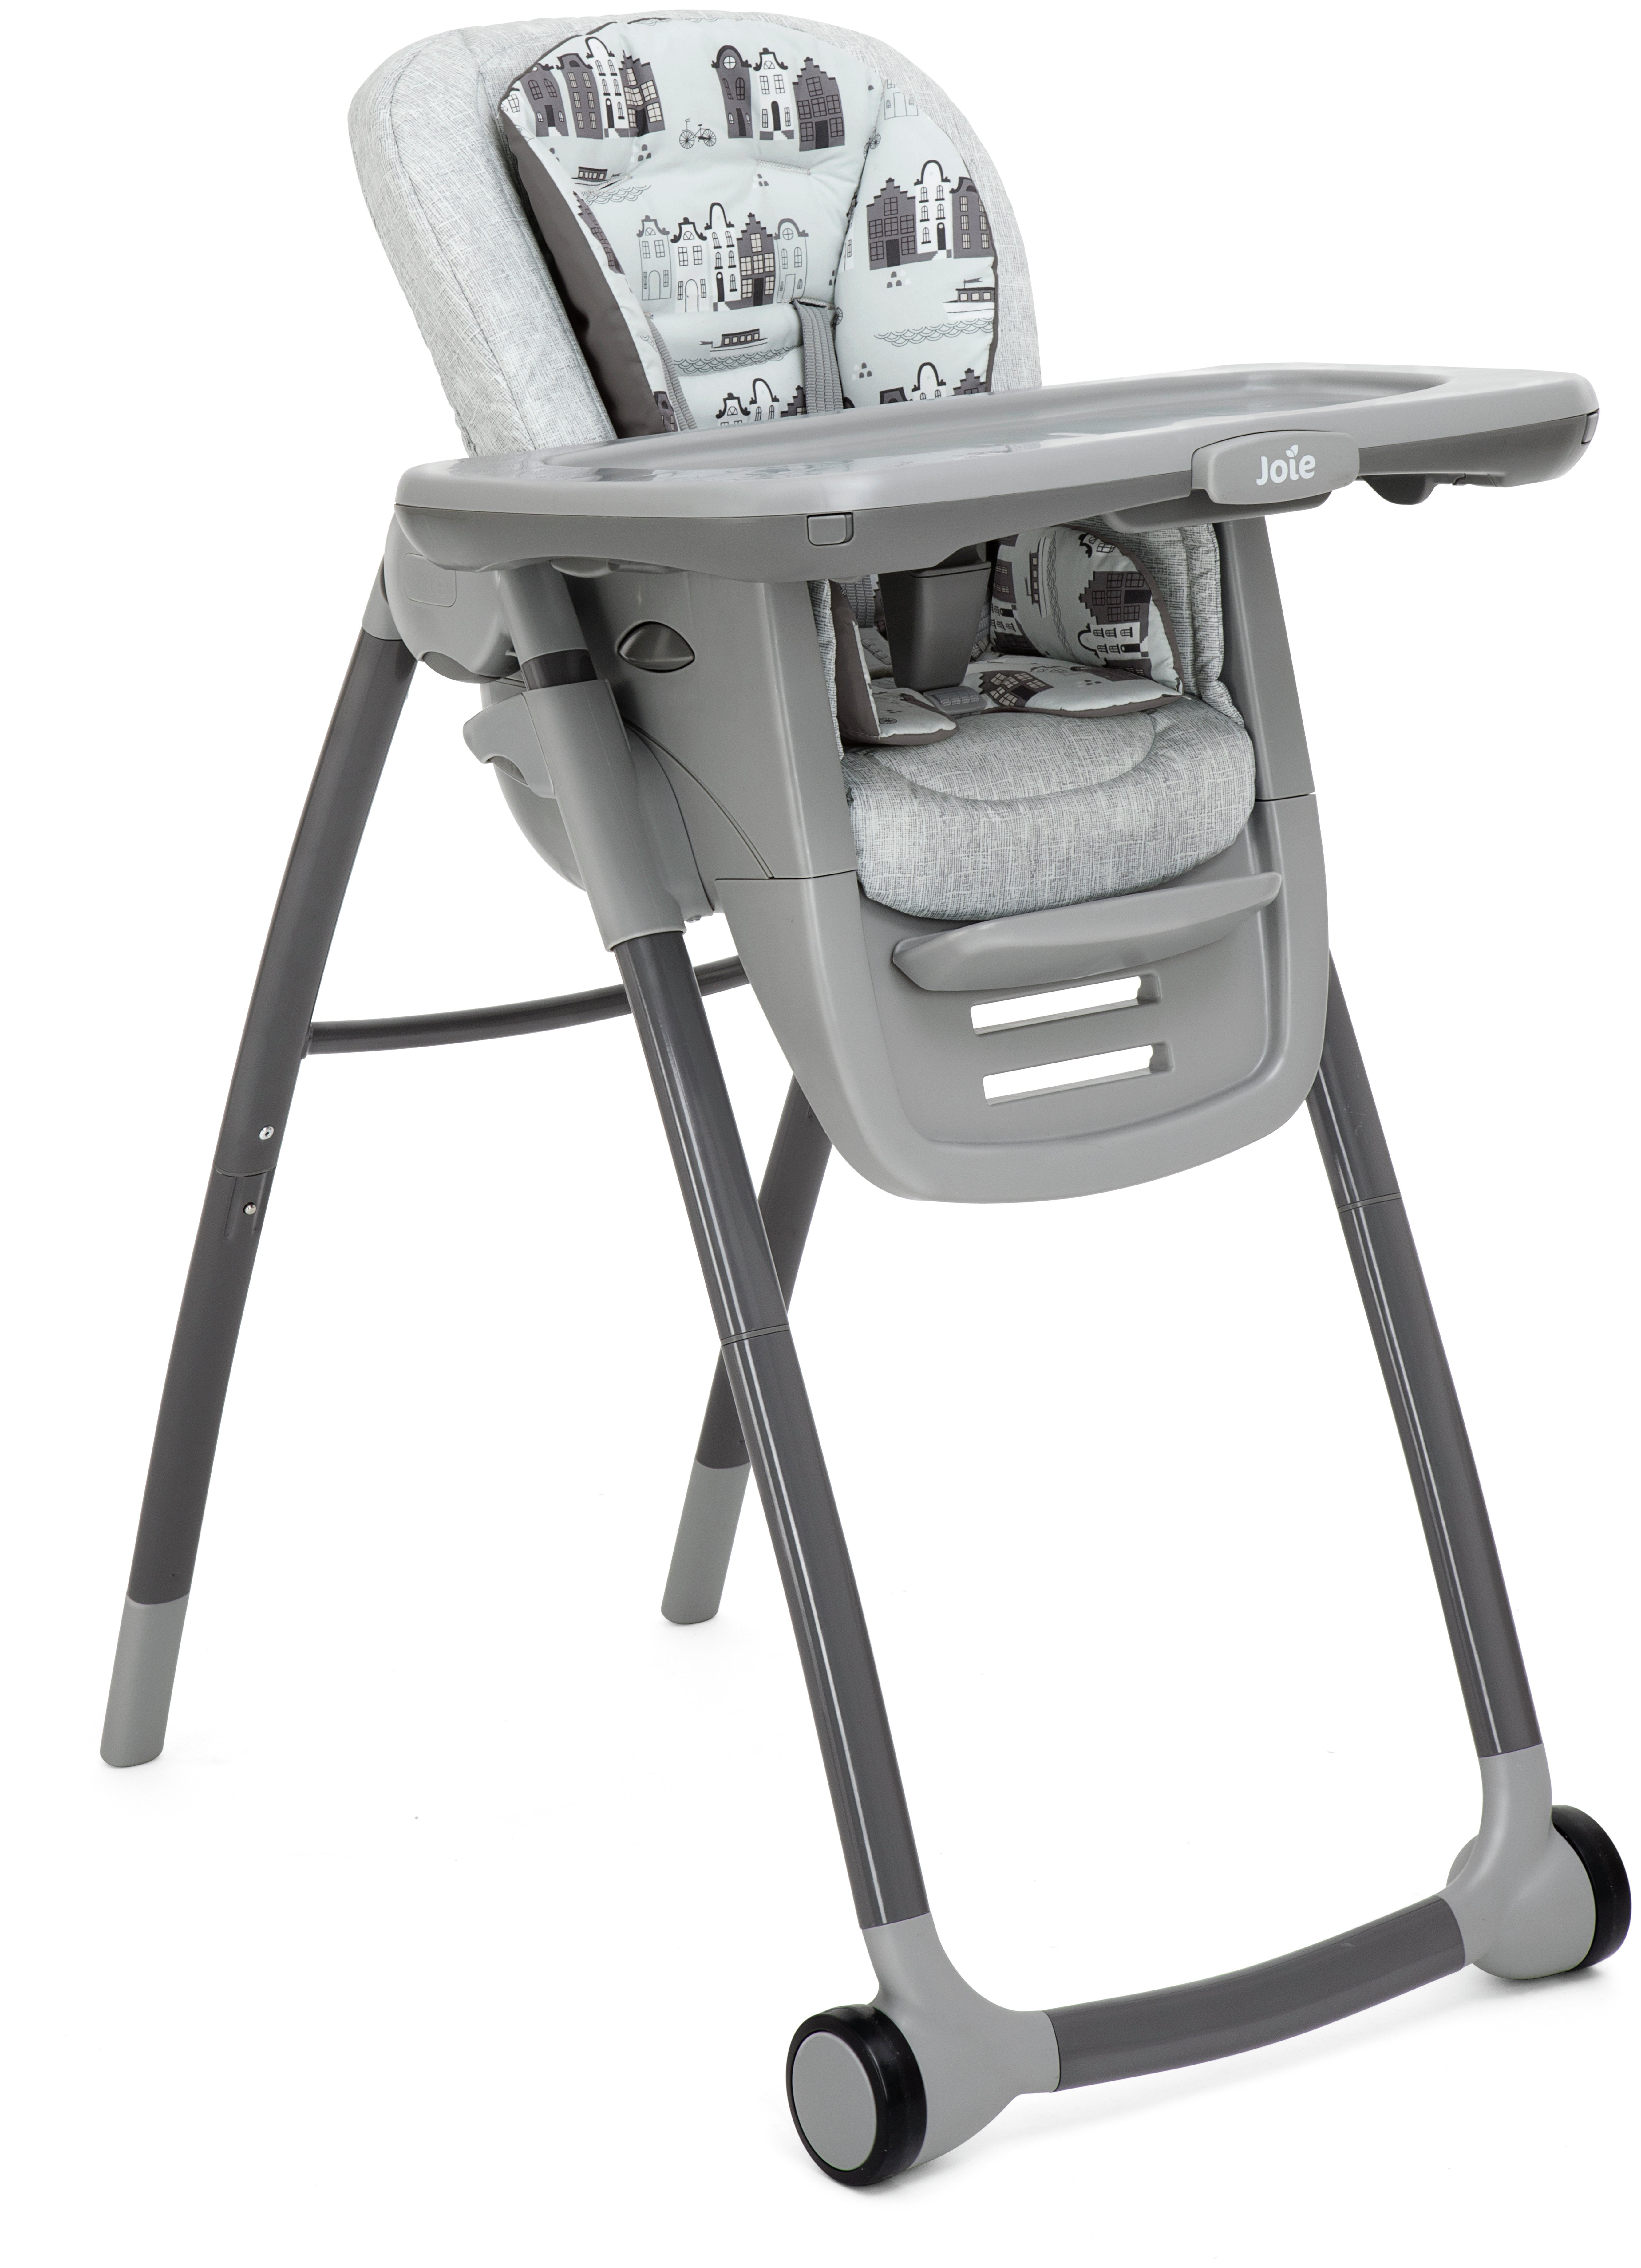 Joie Multiply Highchair